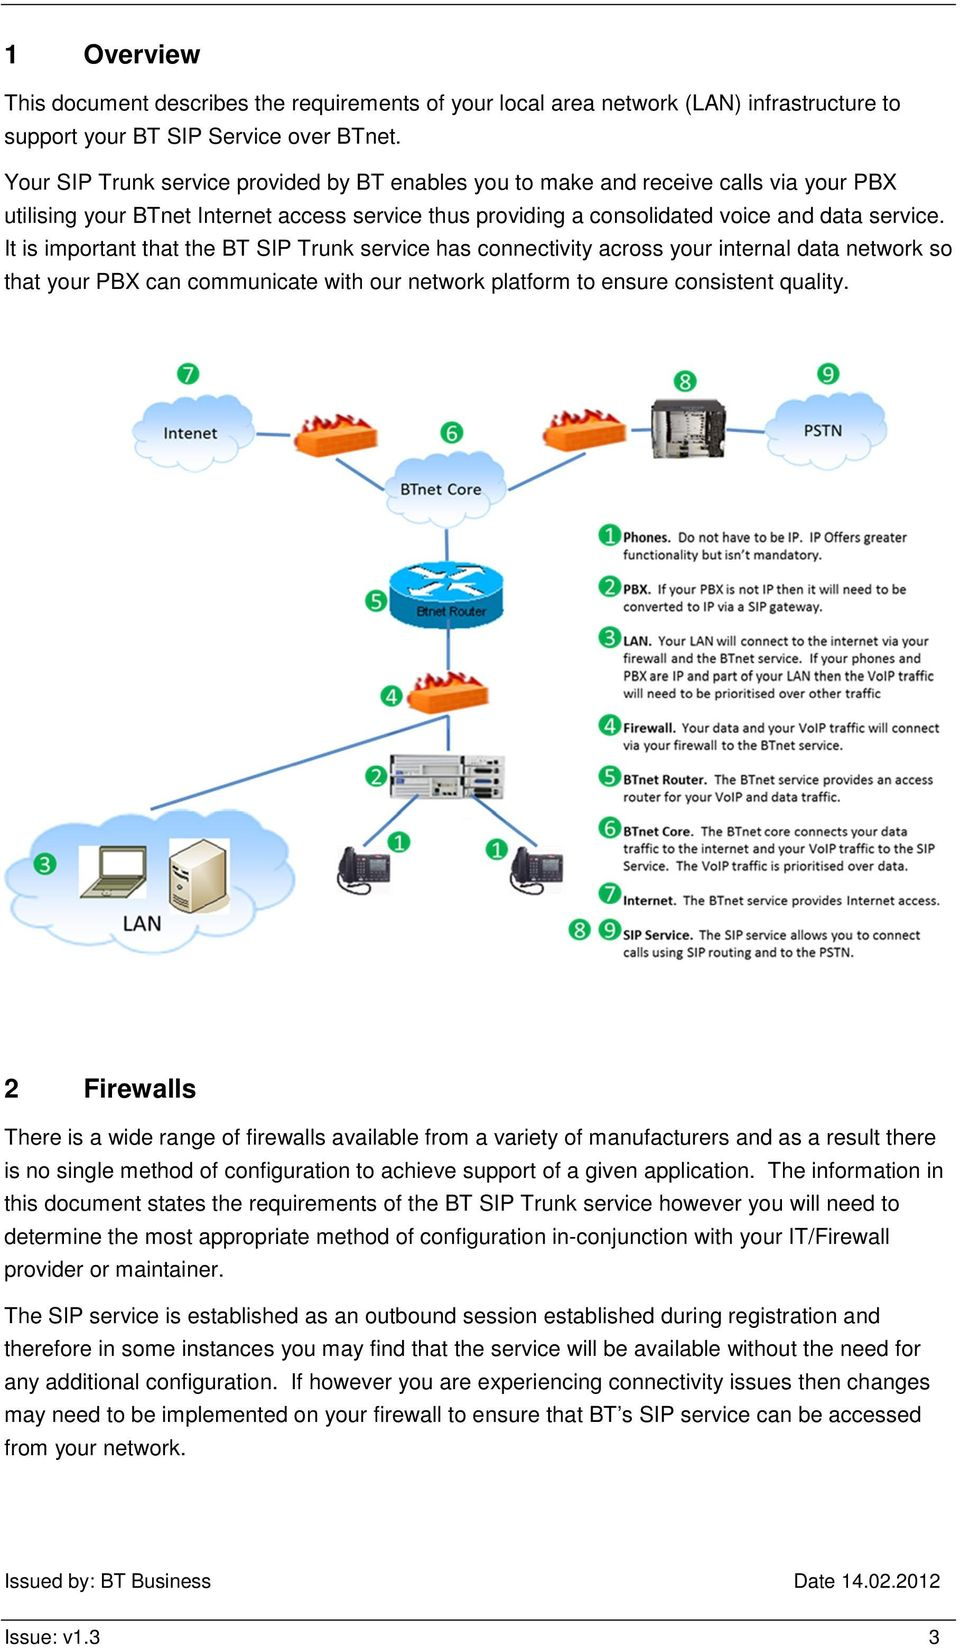 It is important that the BT SIP Trunk service has connectivity across your internal data network so that your PBX can communicate with our network platform to ensure consistent quality.